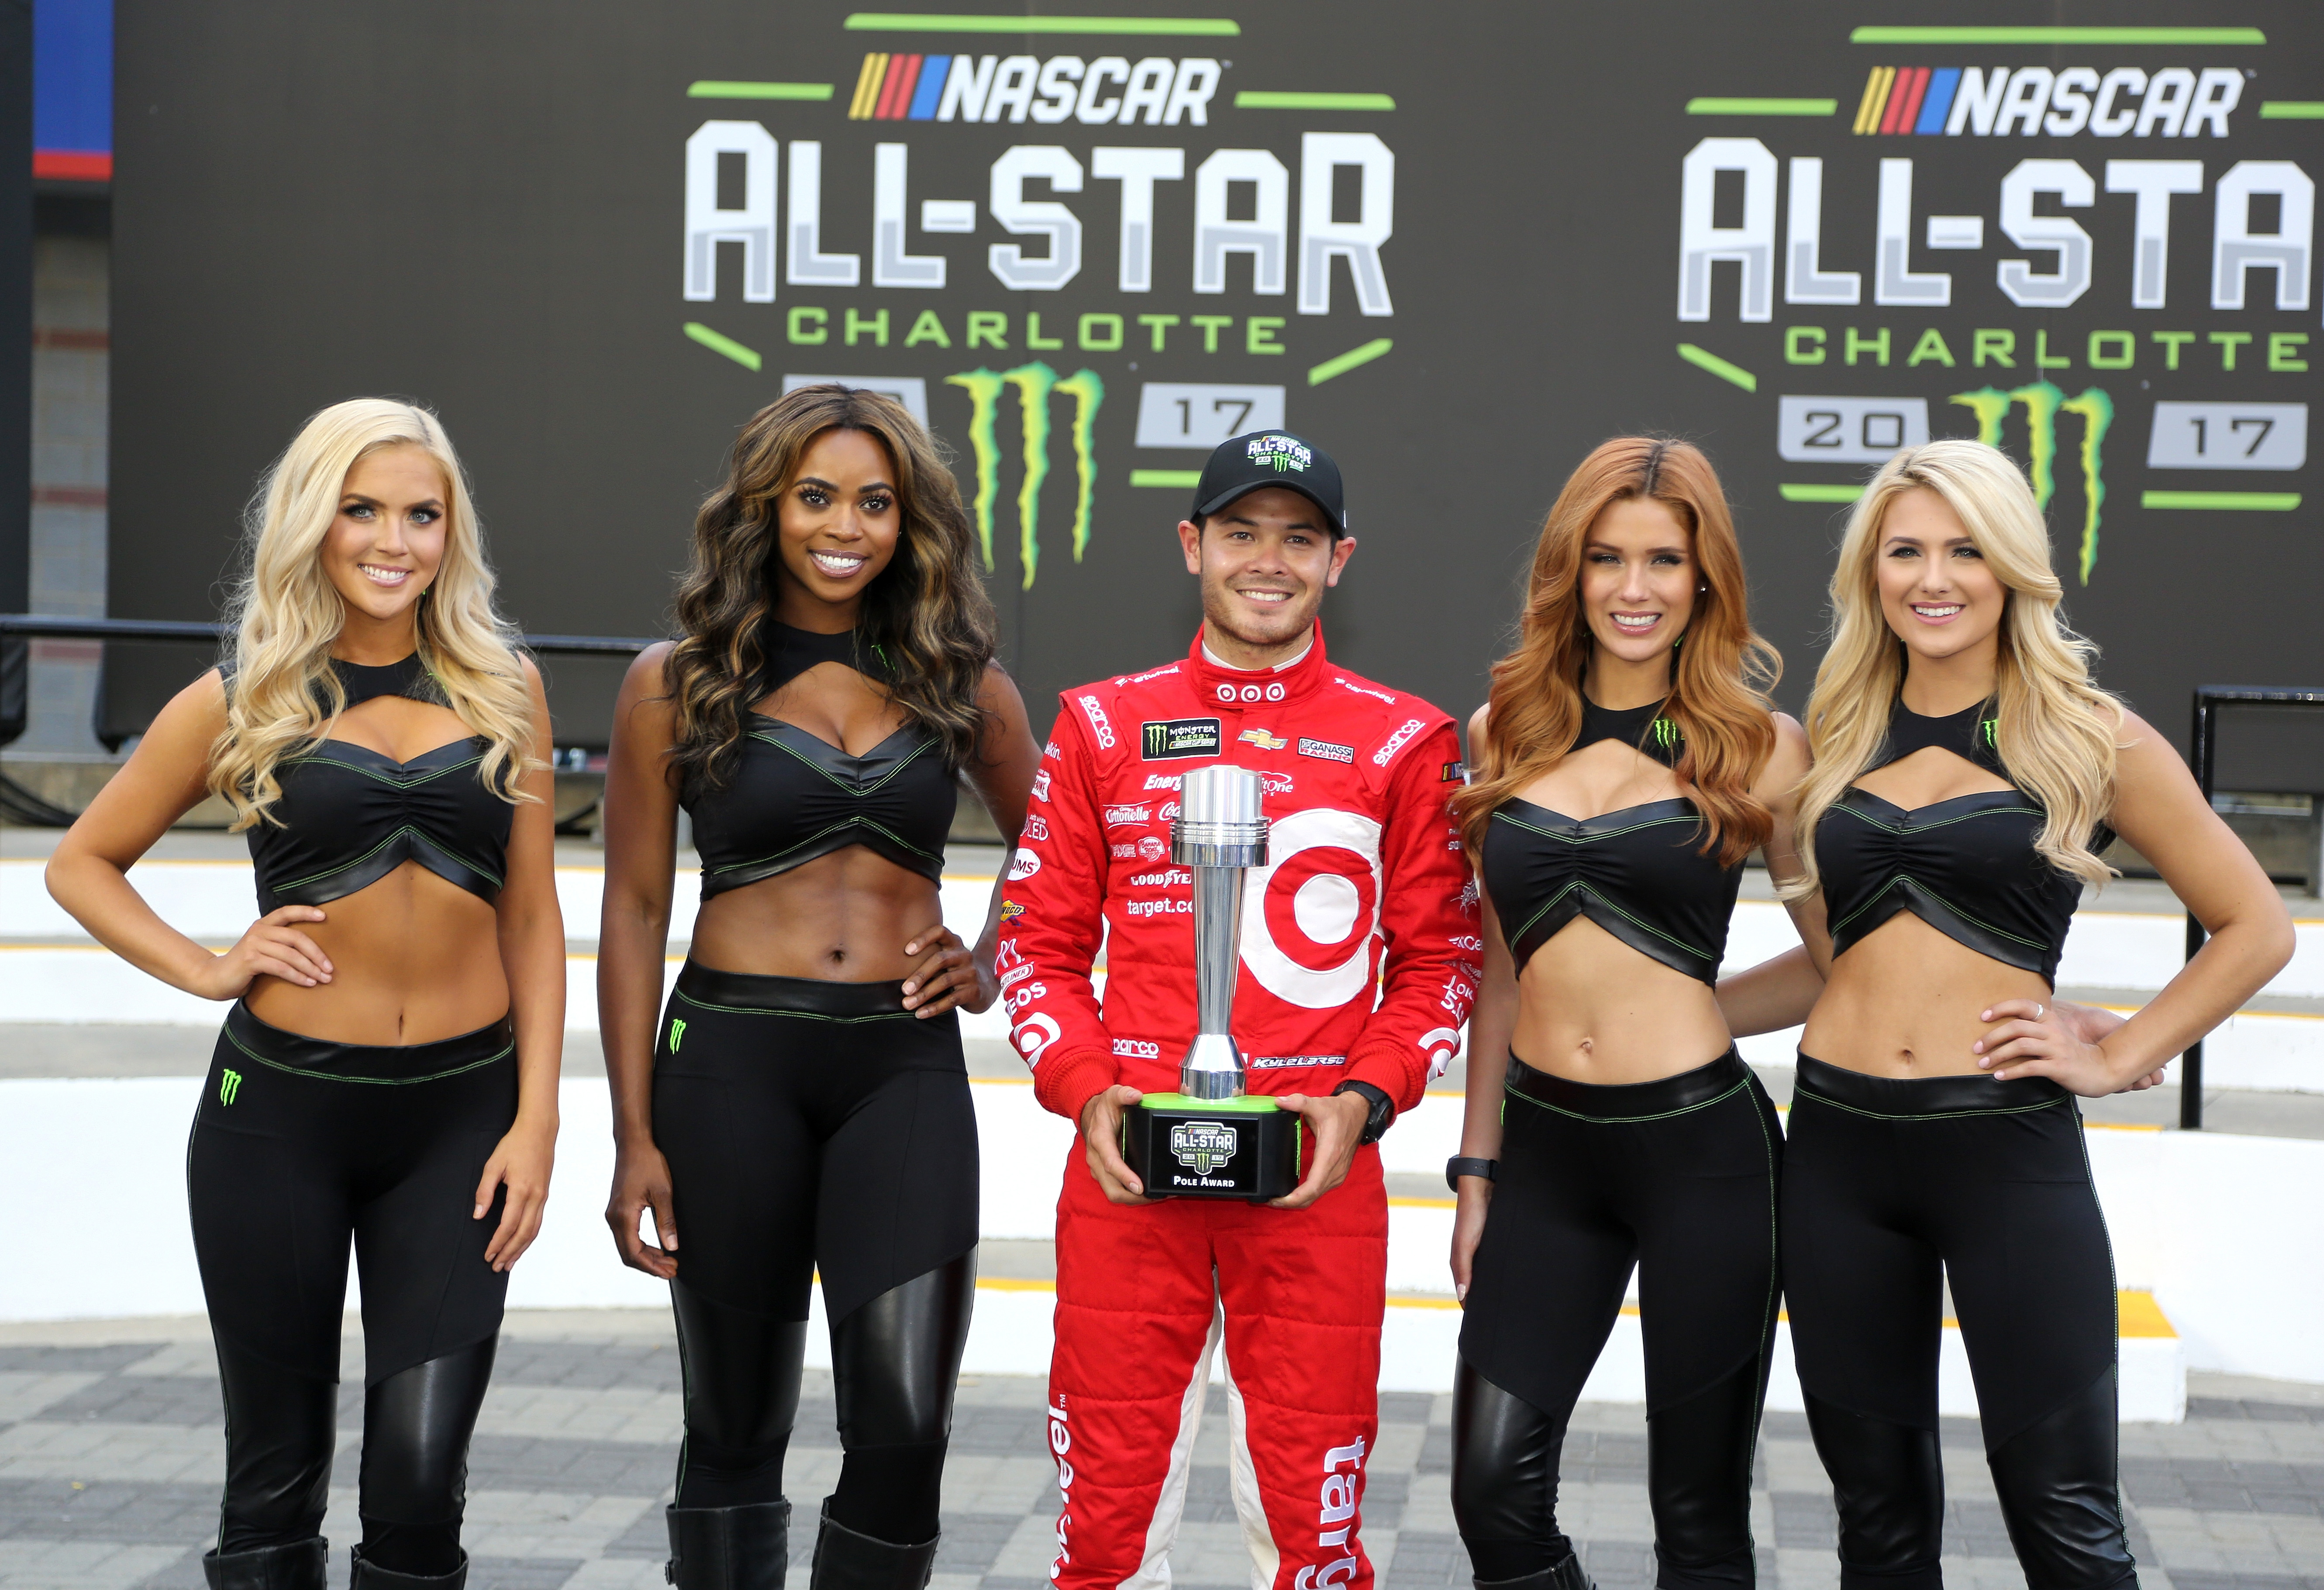 CHARLOTTE, NC - MAY 19: Kyle Larson, driver of the #42 Target Chevrolet, poses with the All-Star pole award qualifying for the Monster Energy NASCAR All-Star Race at Charlotte Motor Speedway on May 19, 2017 in Charlotte, North Carolina. (Photo by Jerry Markland/Getty Images)